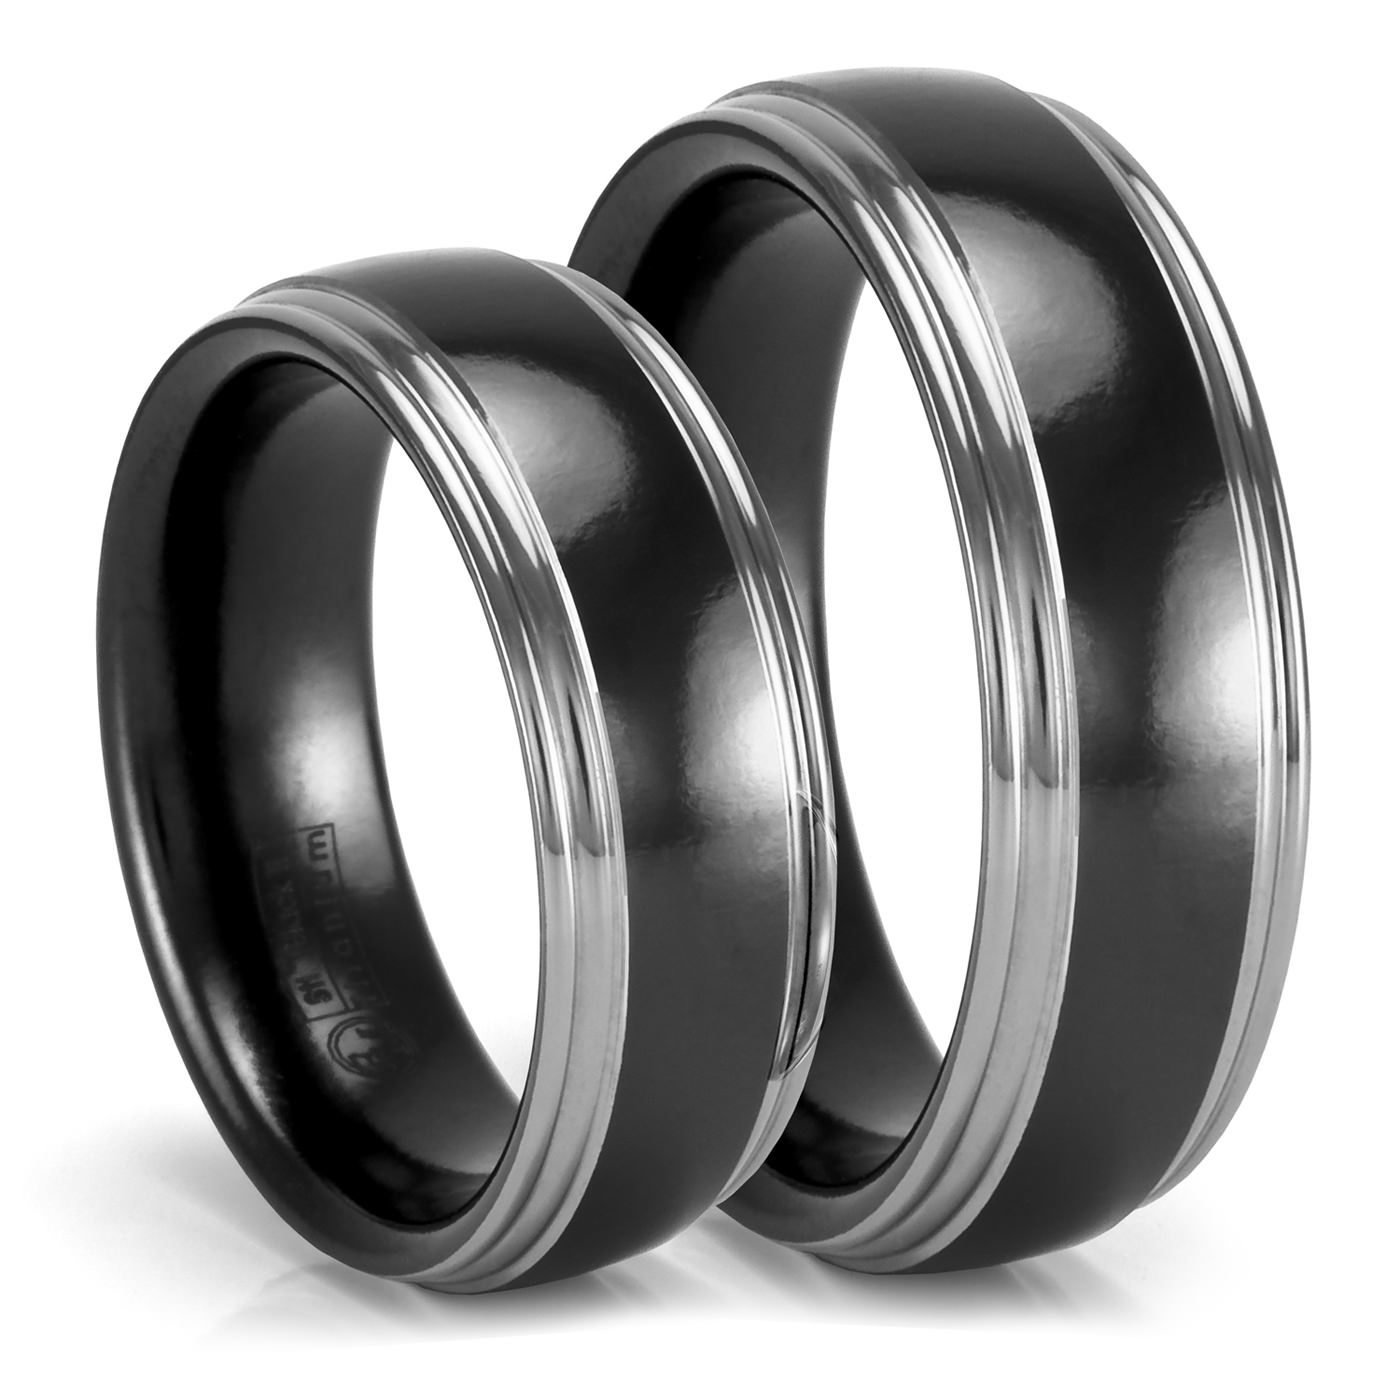 Black Wedding Rings His And Hers synrgyus